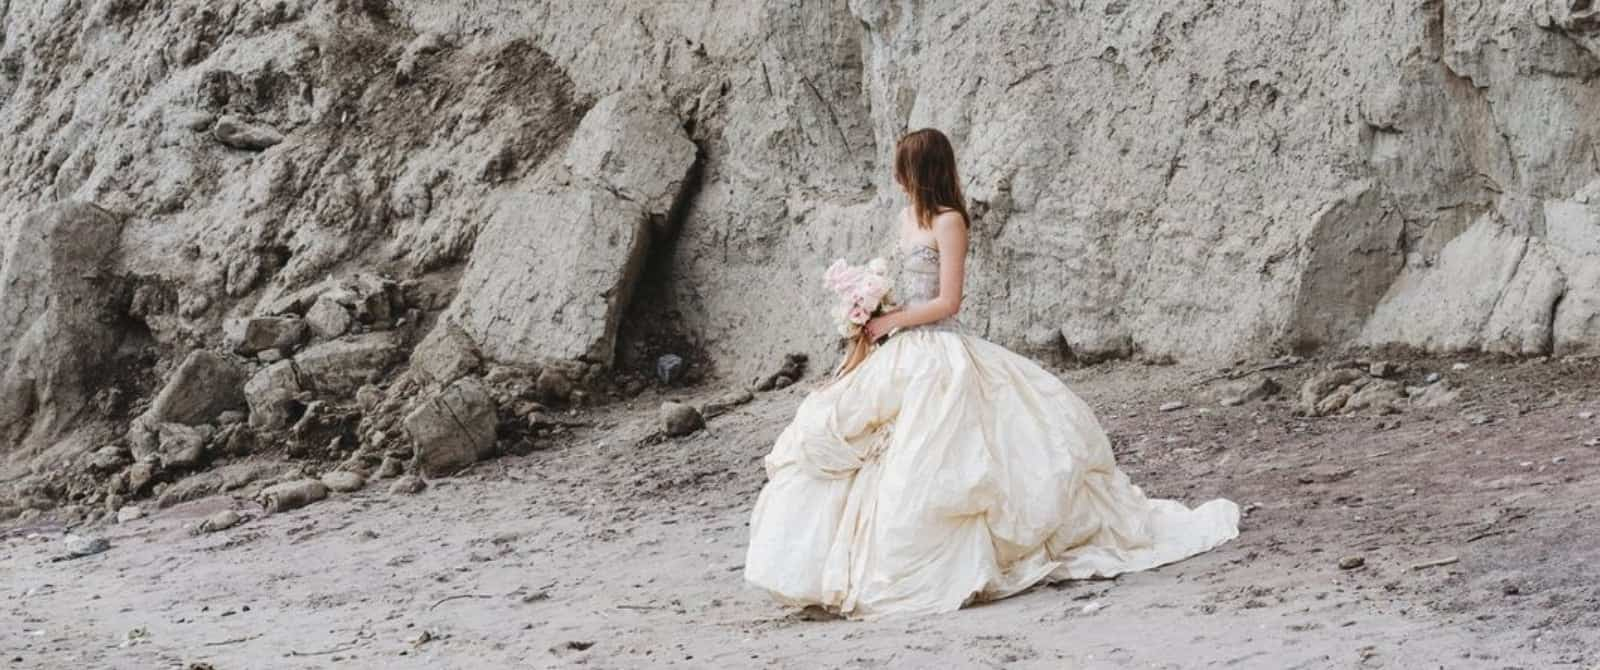 A bride whose face is turned away from the camera. Stood on a rocky beach with cliffs in the background.